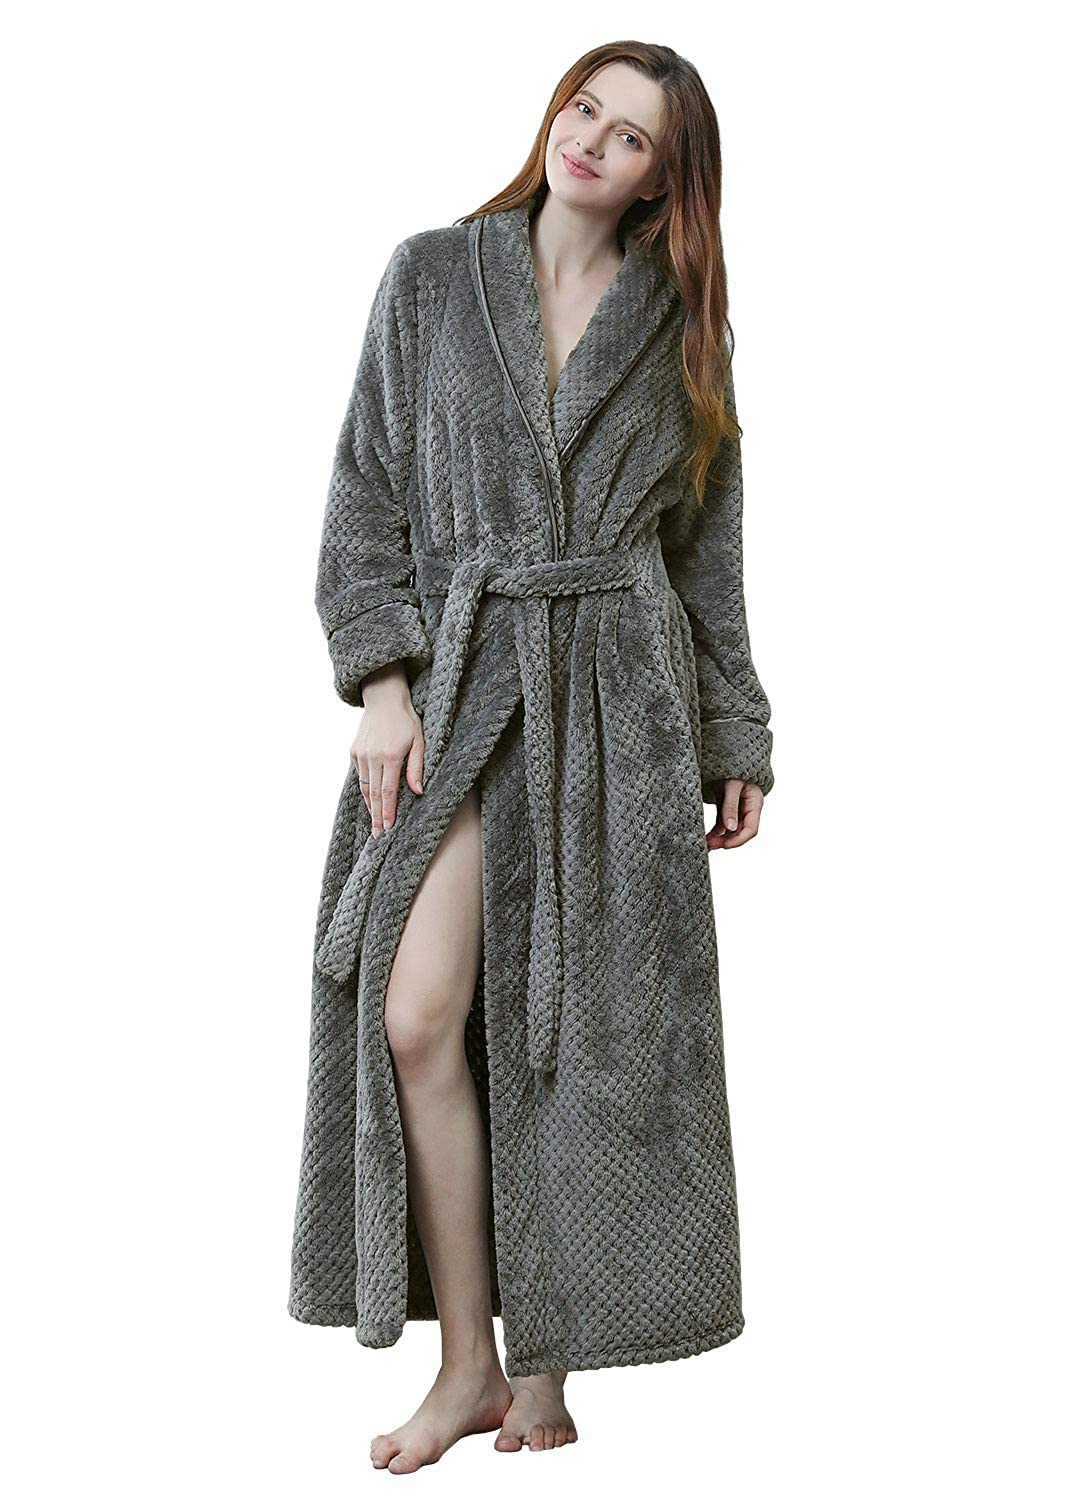 popular stores best choice discount price Womens Soft Plush Bathrobe Winter Fleece Dressing Gown Fluffy Bath Robe  Housecoat Full Long